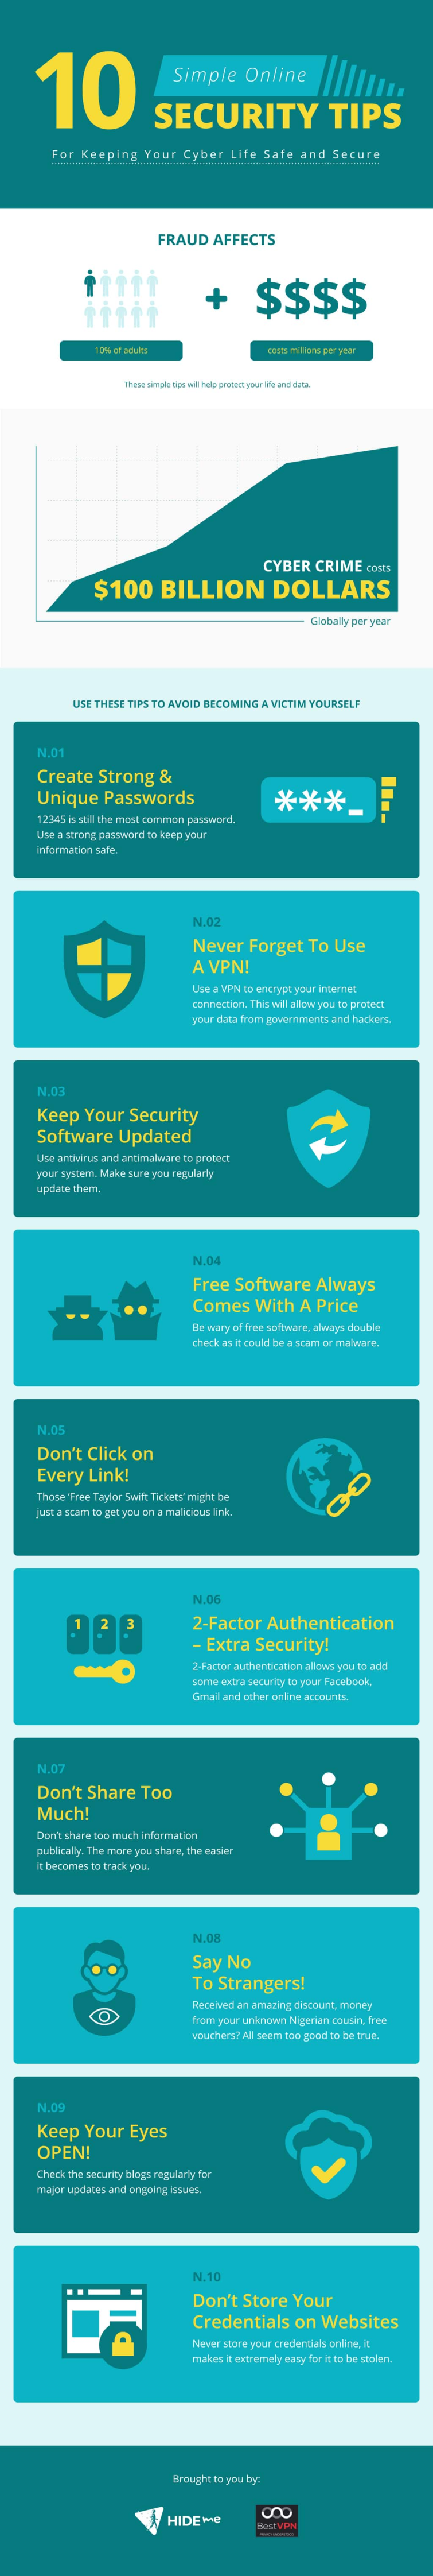 Simple_Security_Tips_Infographic